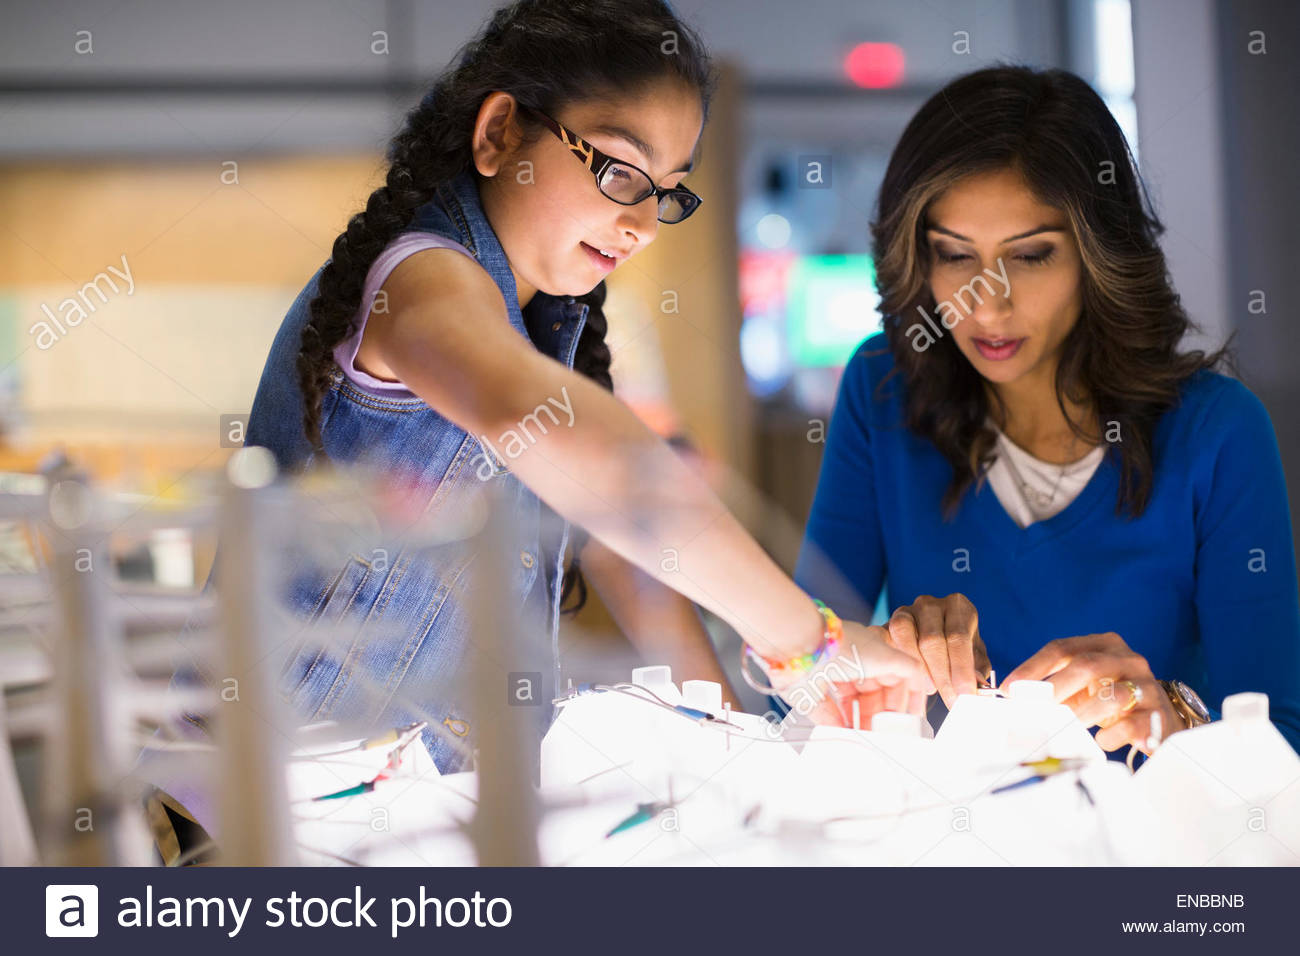 Mother daughter playing electricity exhibit at science center - Stock Image